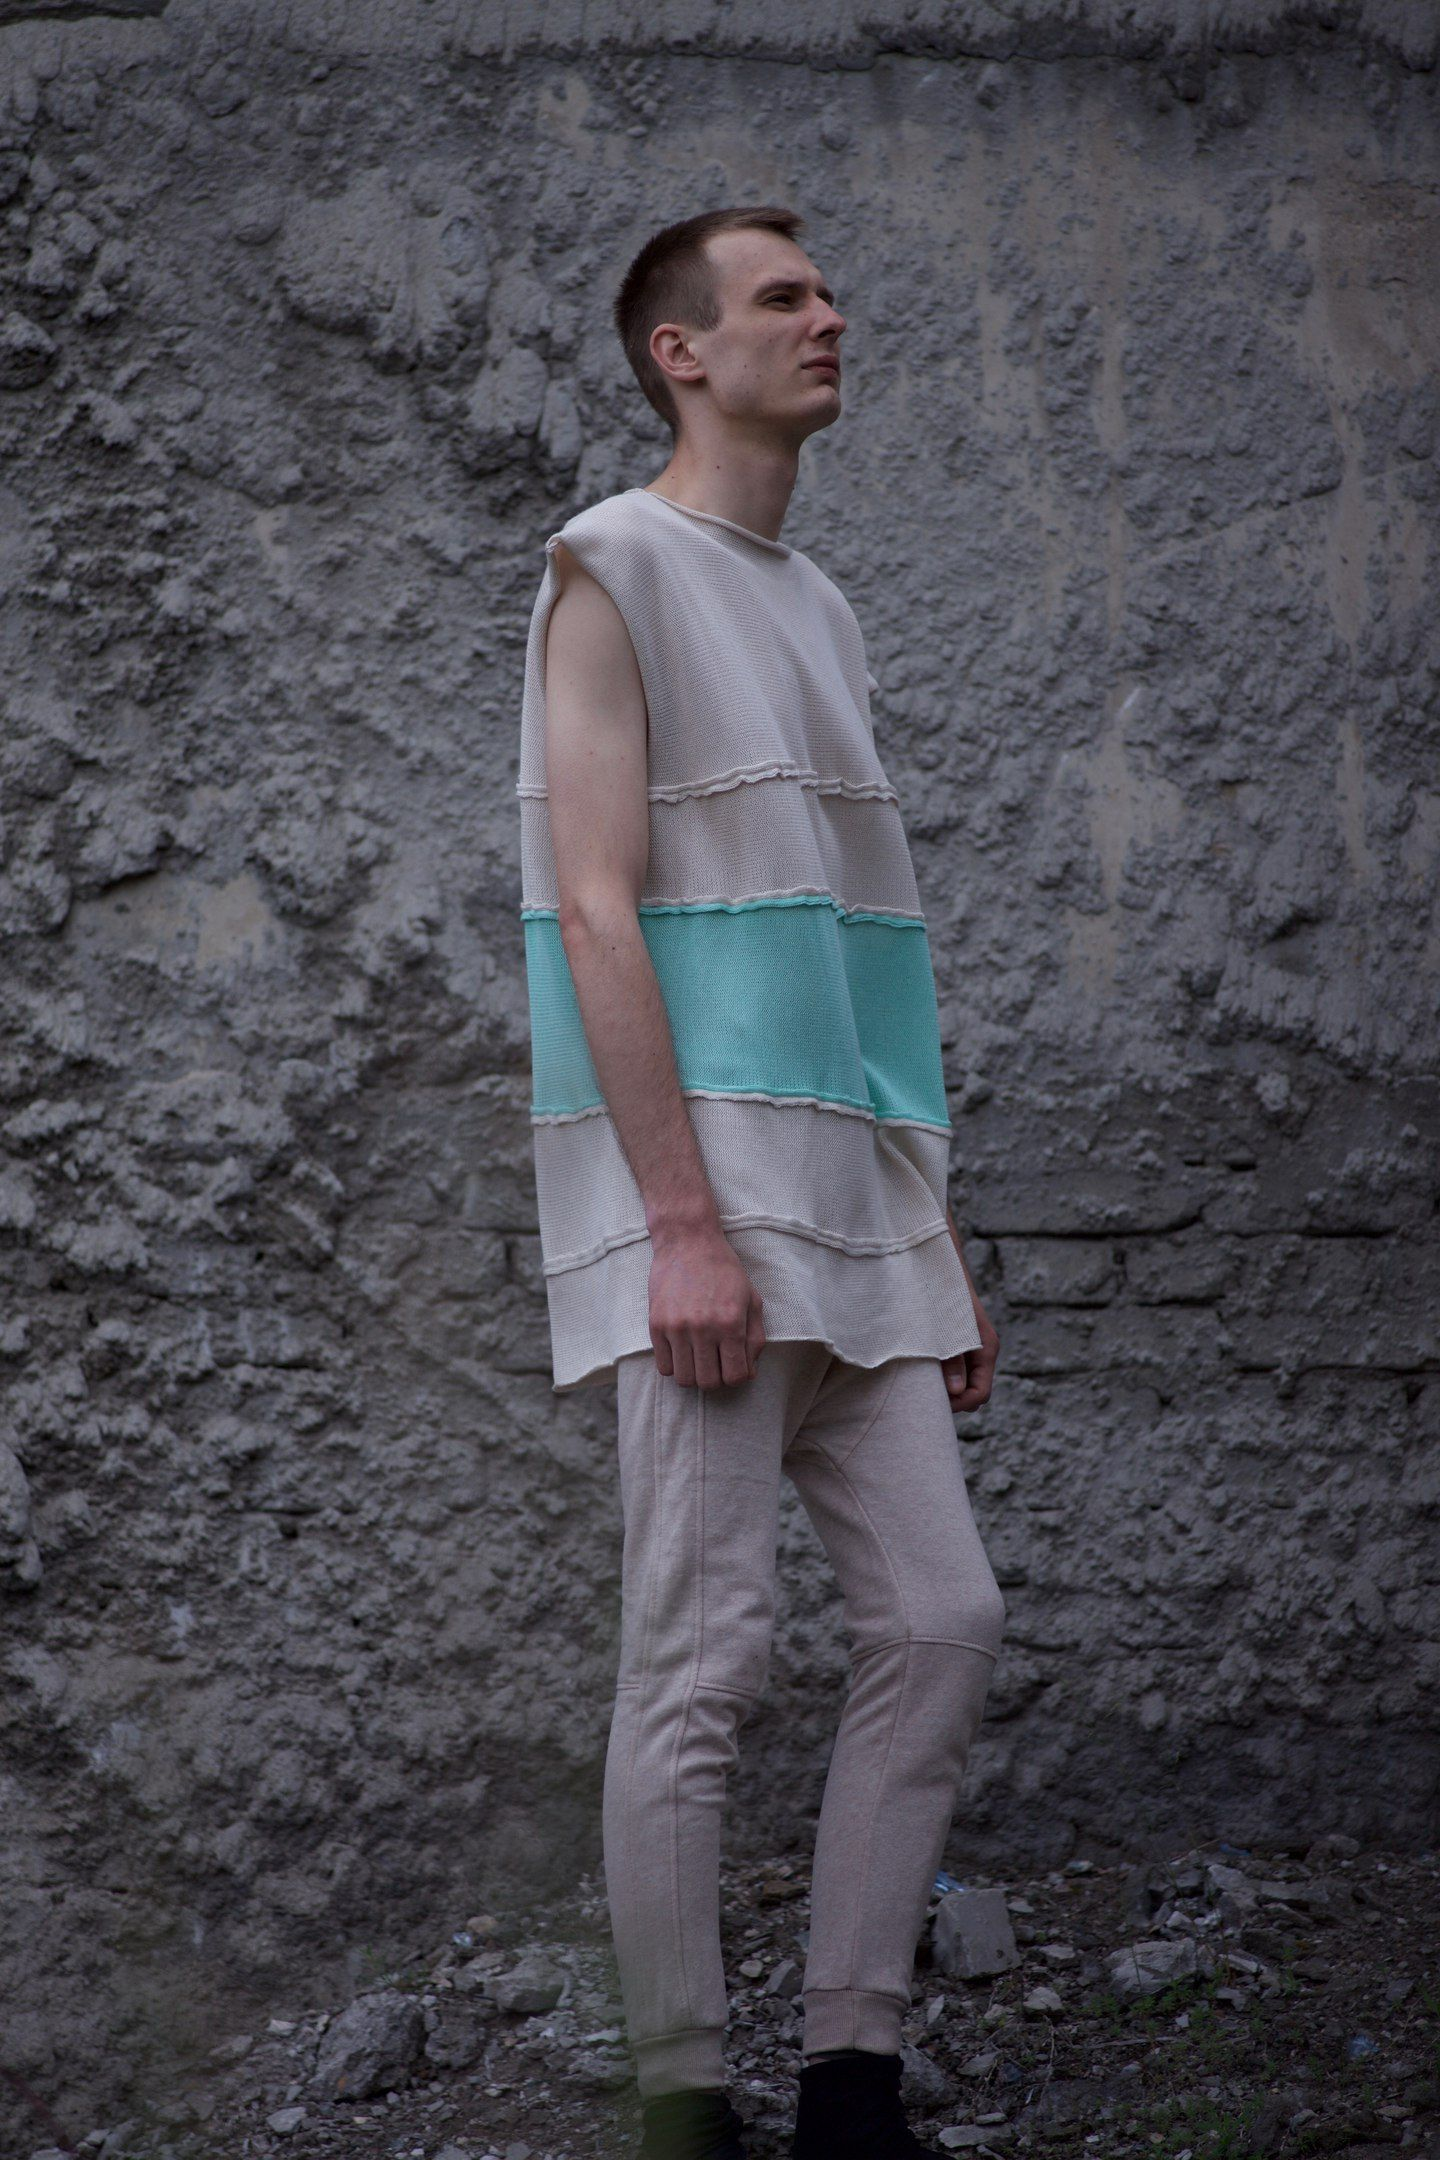 Futuristic Clothing Apocalyptic Unisex Knit Non Sleeve Long Tee Shirt White Turquoise Cotton Made in Germany Minimal Designer NAANwear YJYGlAkIl